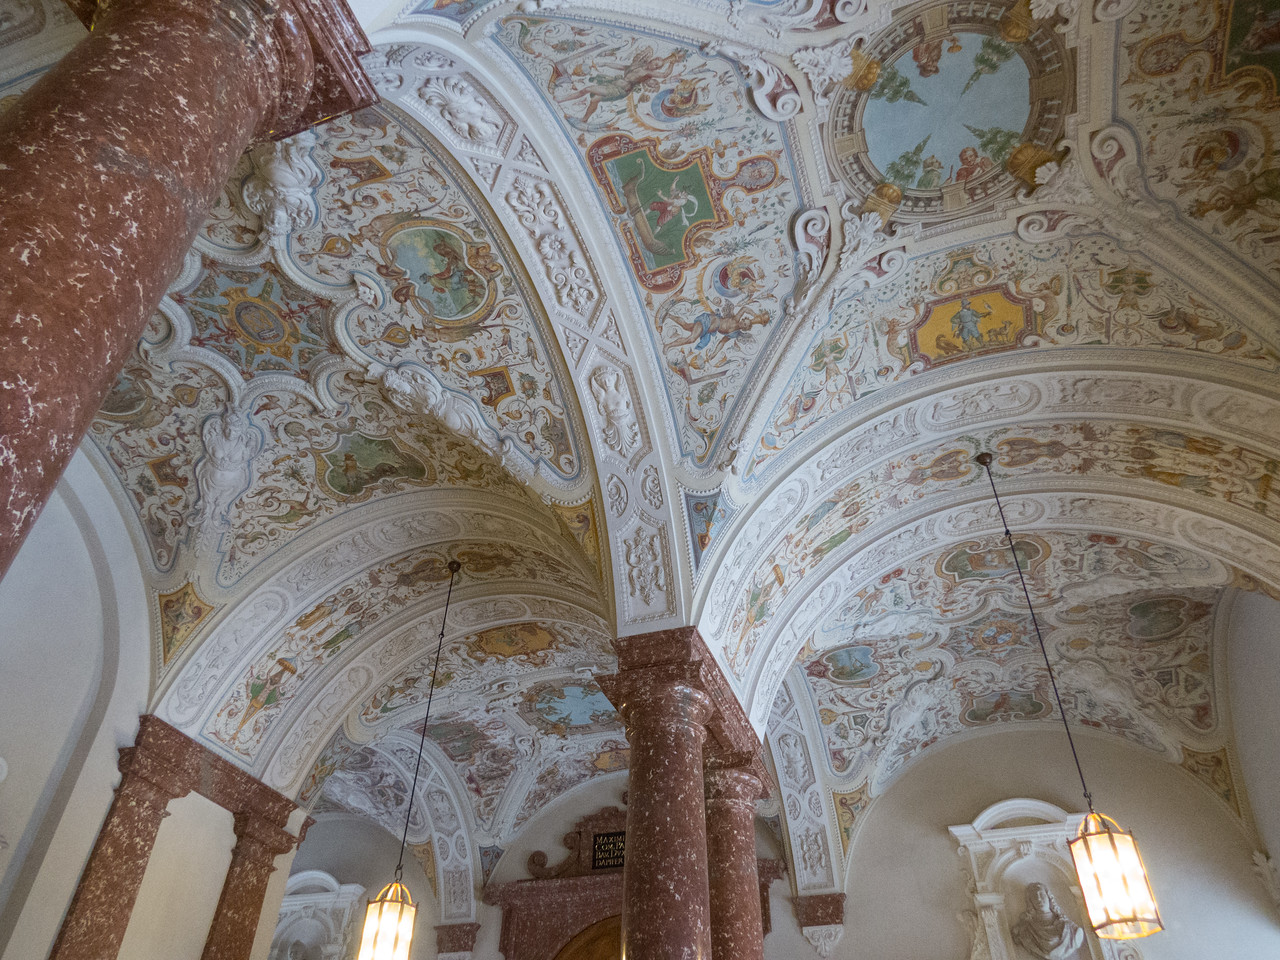 Munich Residence ceiling